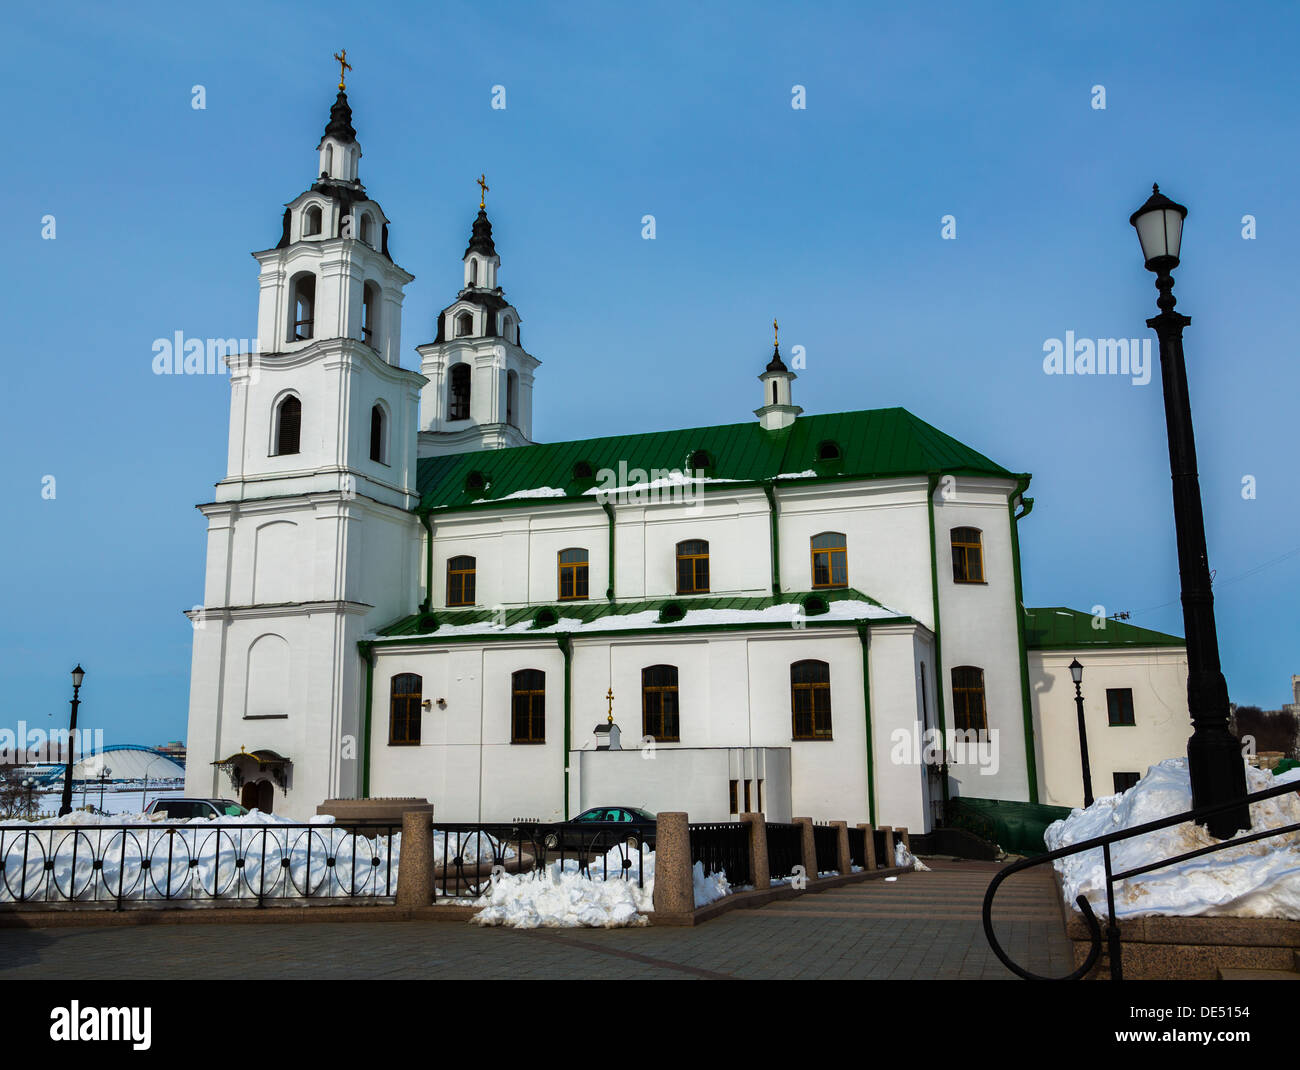 Cathedral of Holy Spirit in Minsk - Stock Image